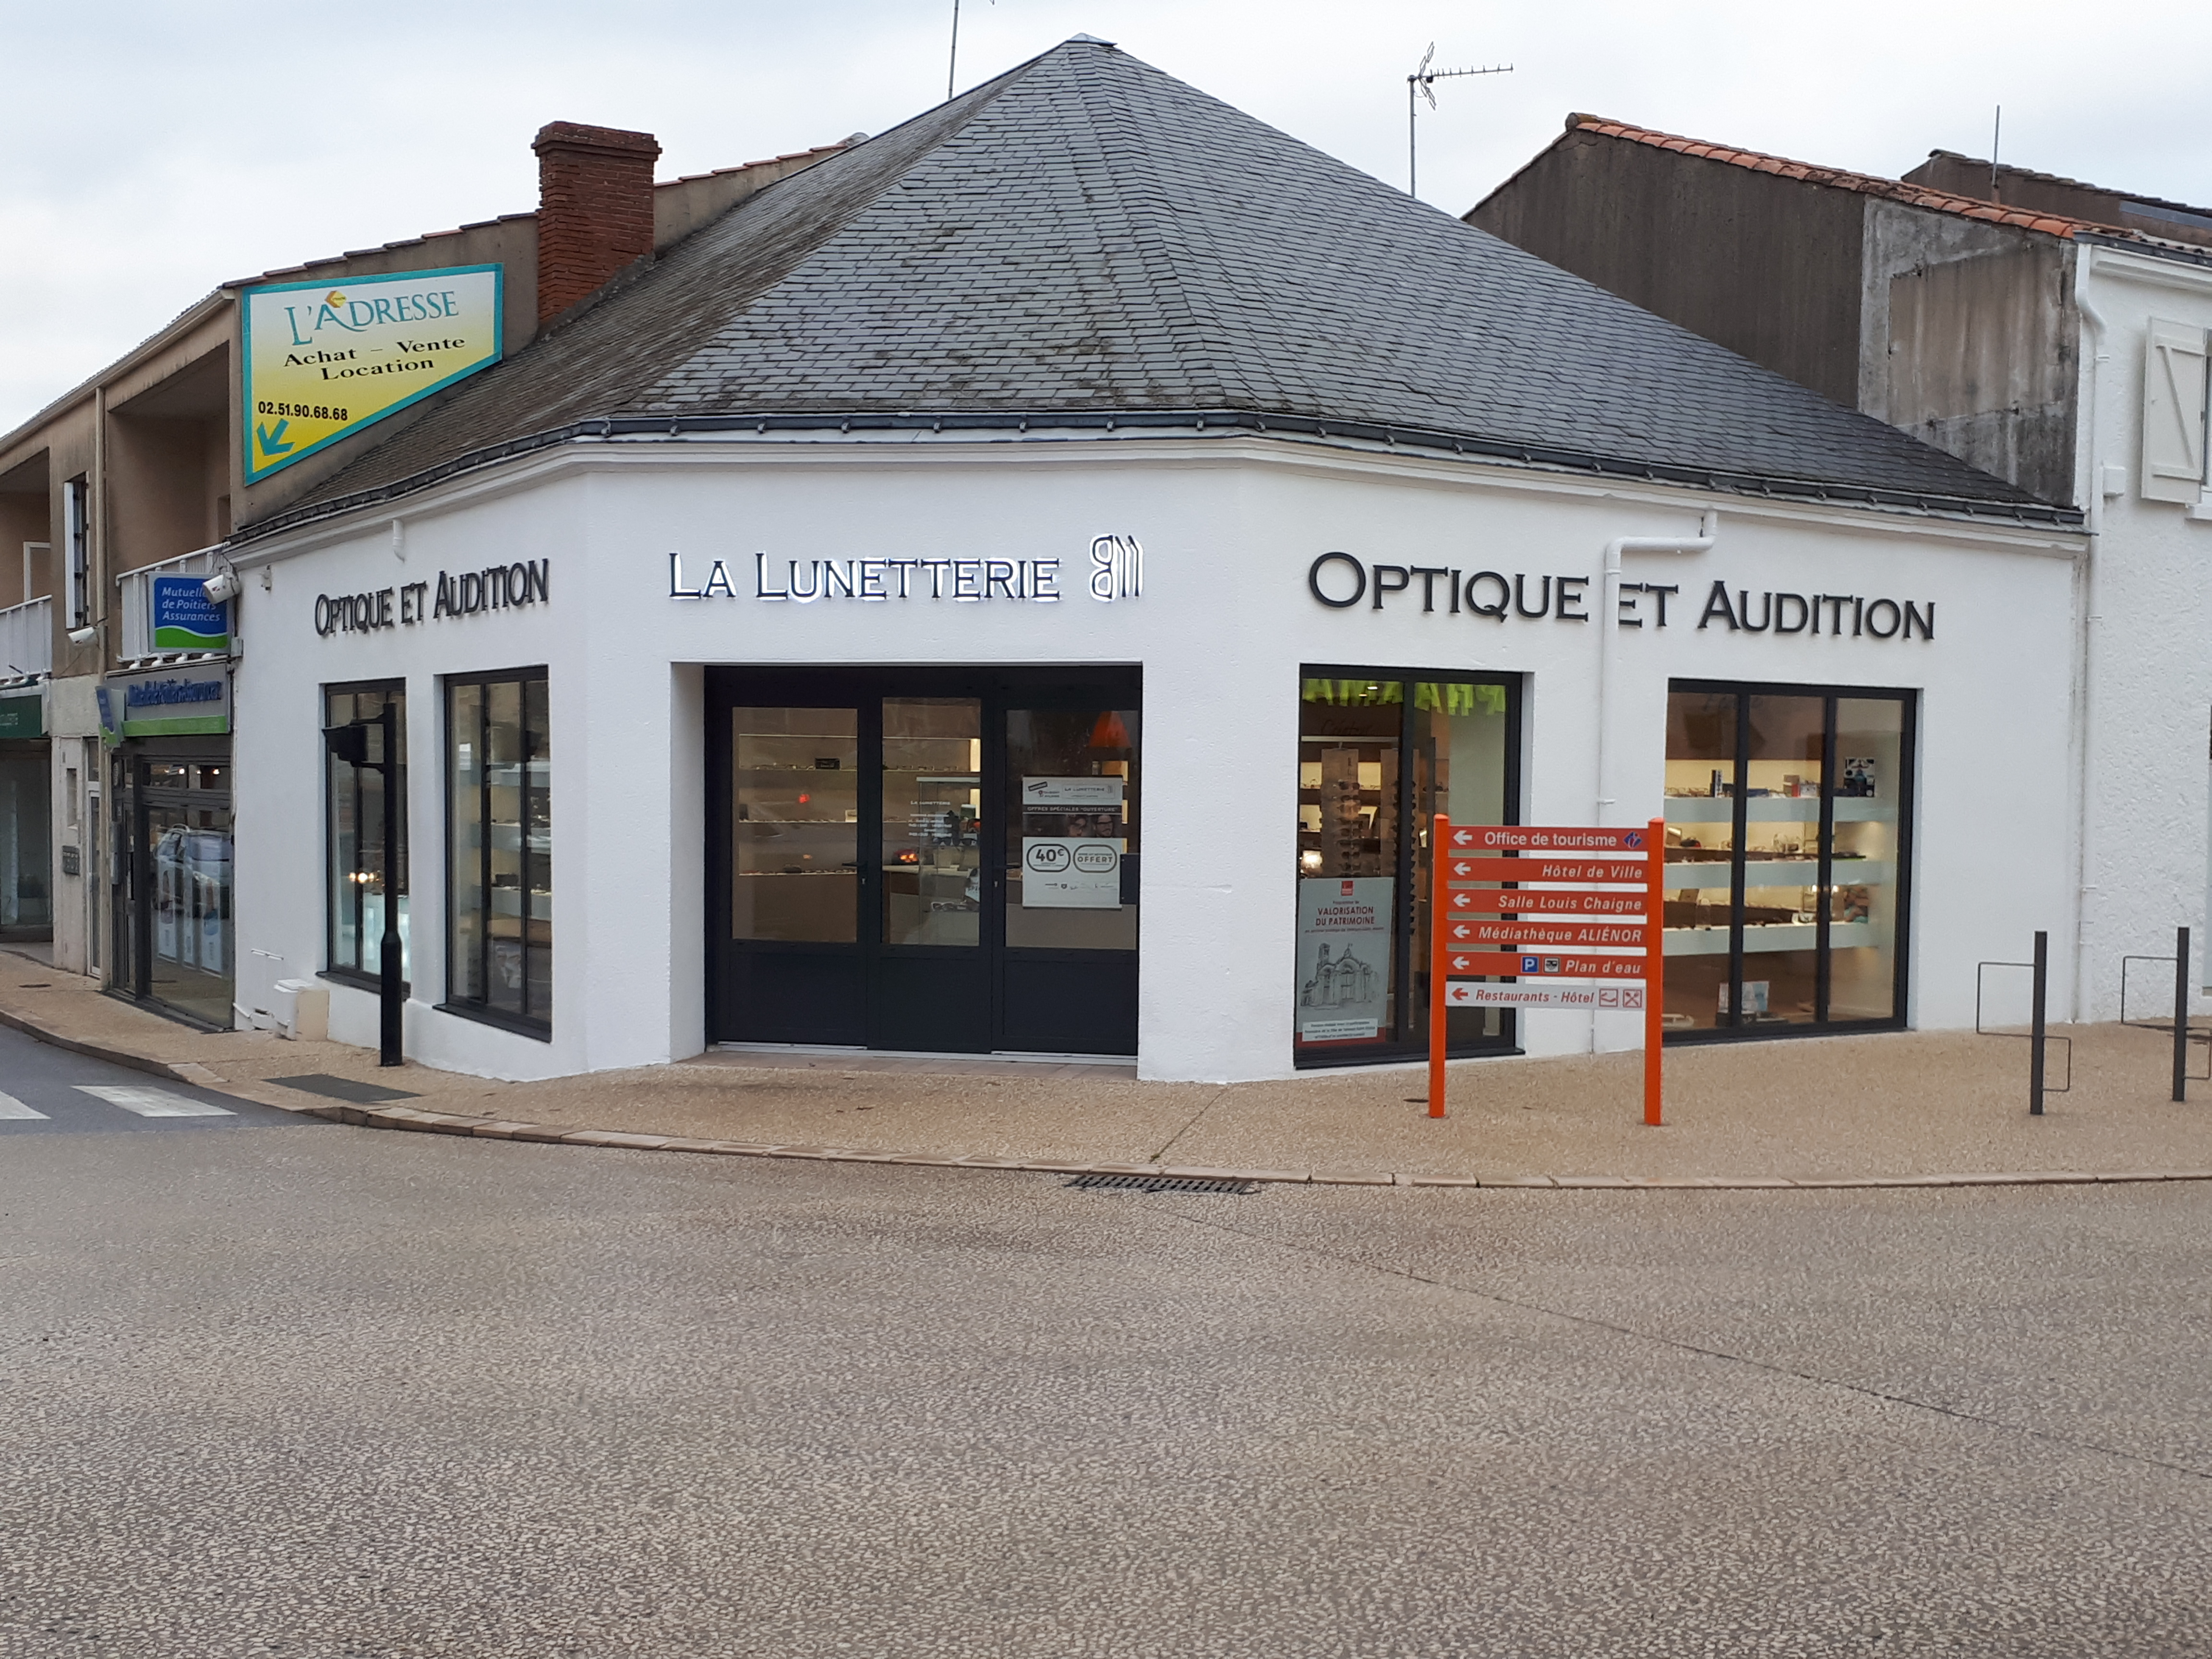 Opticien : LA LUNETTERIE, 2 Rue nationale, 85440 Talmont-Saint-Hilaire